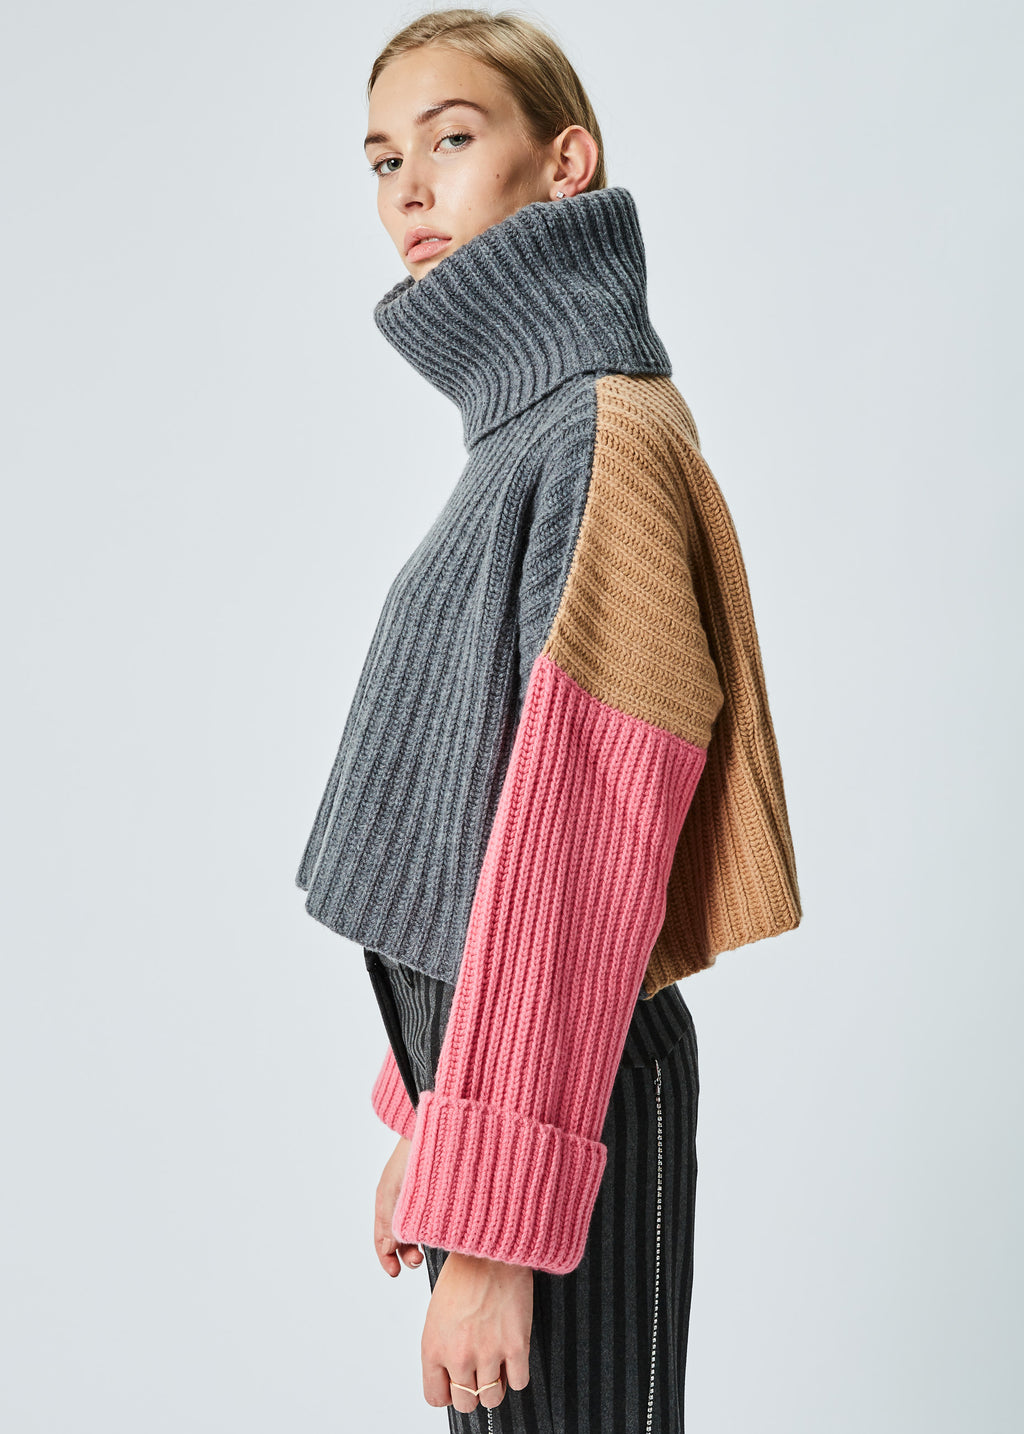 Cropped Knit Turtleneck Sweater in Grey and Pink and Camel by ...